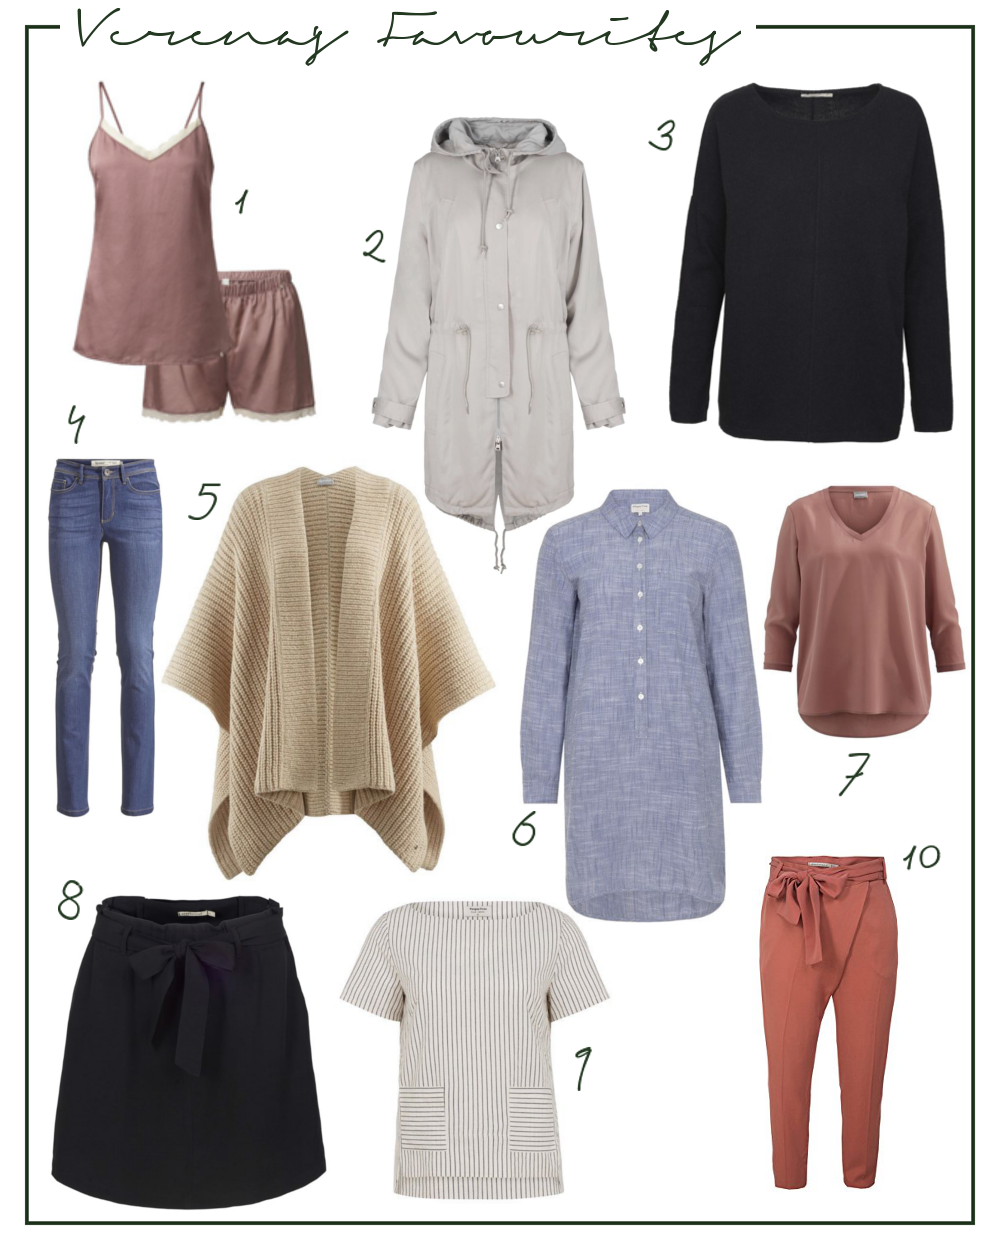 Fall Winter 18 Sale Verena's Favourites.png